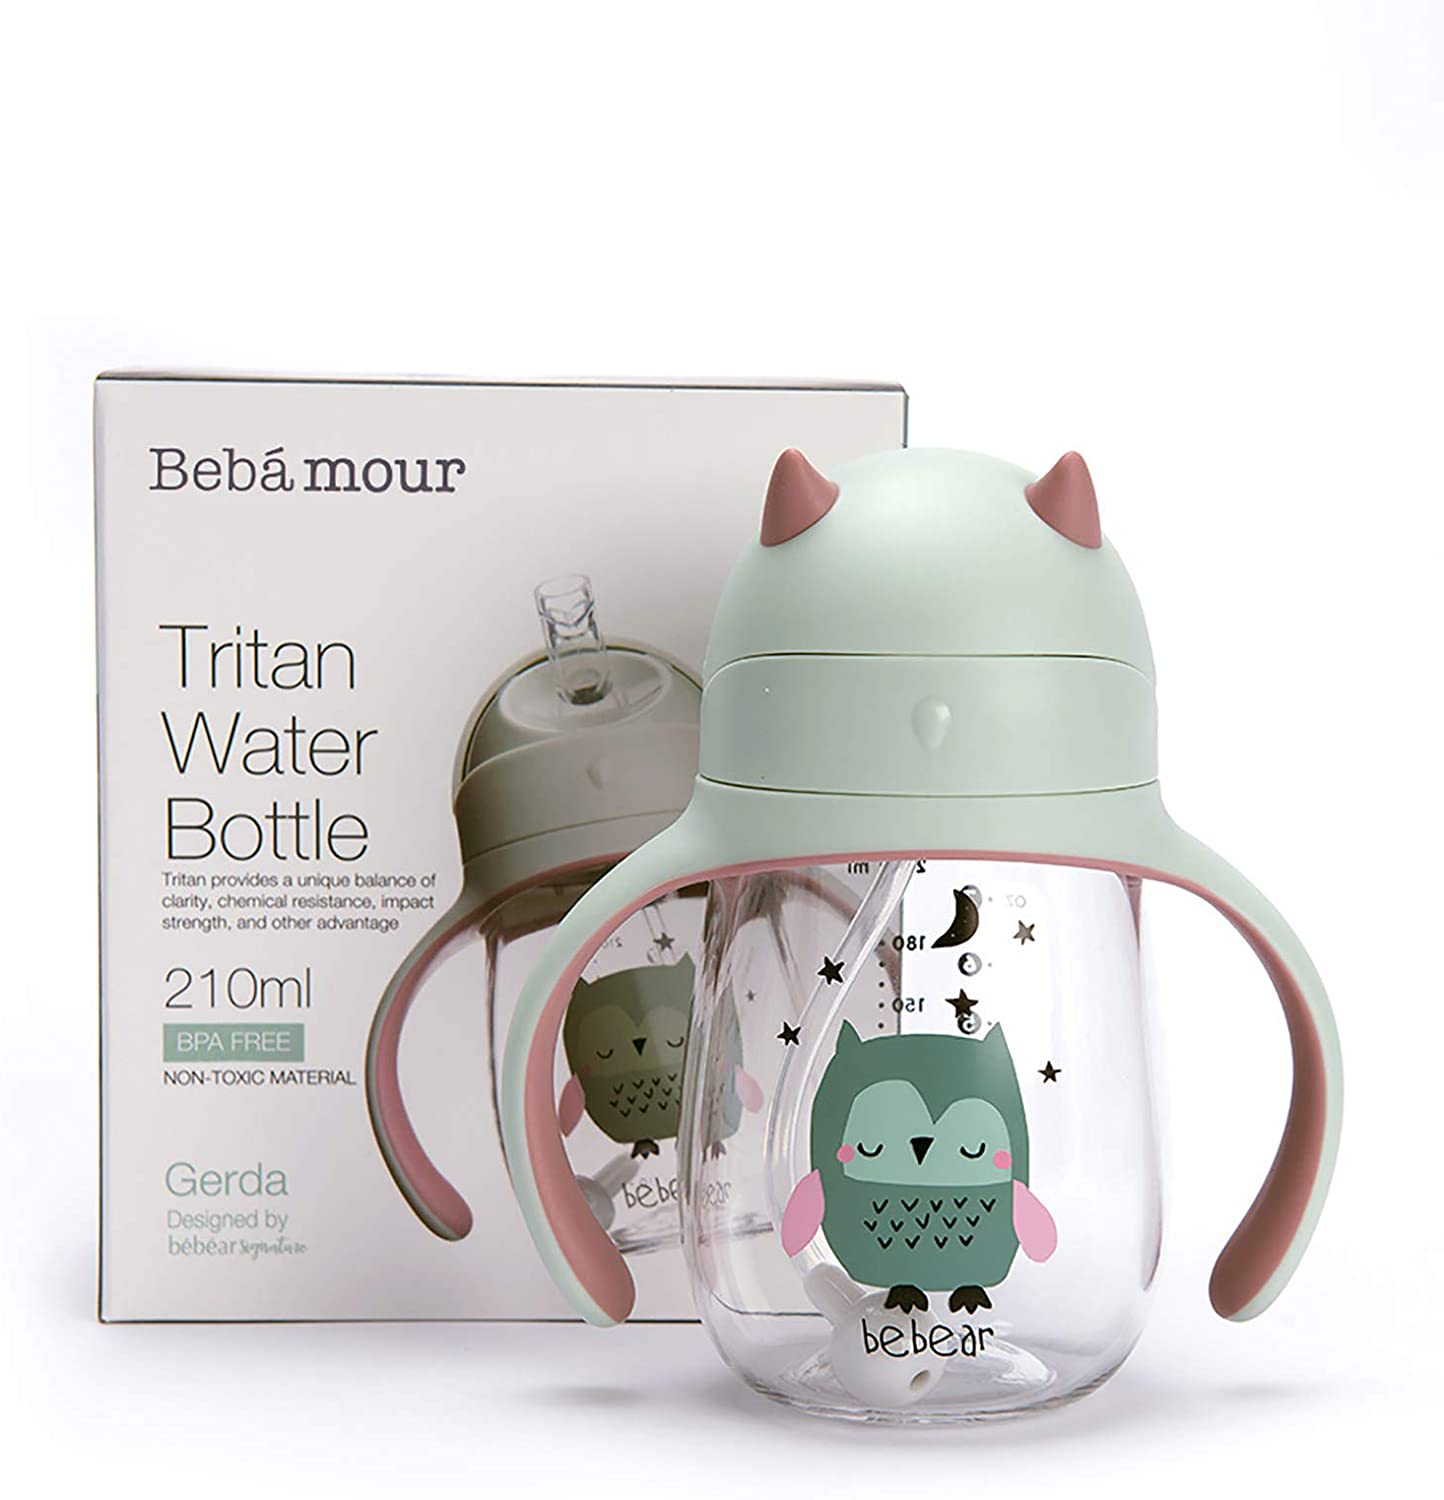 Bebamour Sippy Cup 6-36 Months Non-Spill Straw Cup for Toddlers Soft Spout Cup Spill Proof Water Bottler for Kids, BPA Free, 210ml - Green Owl